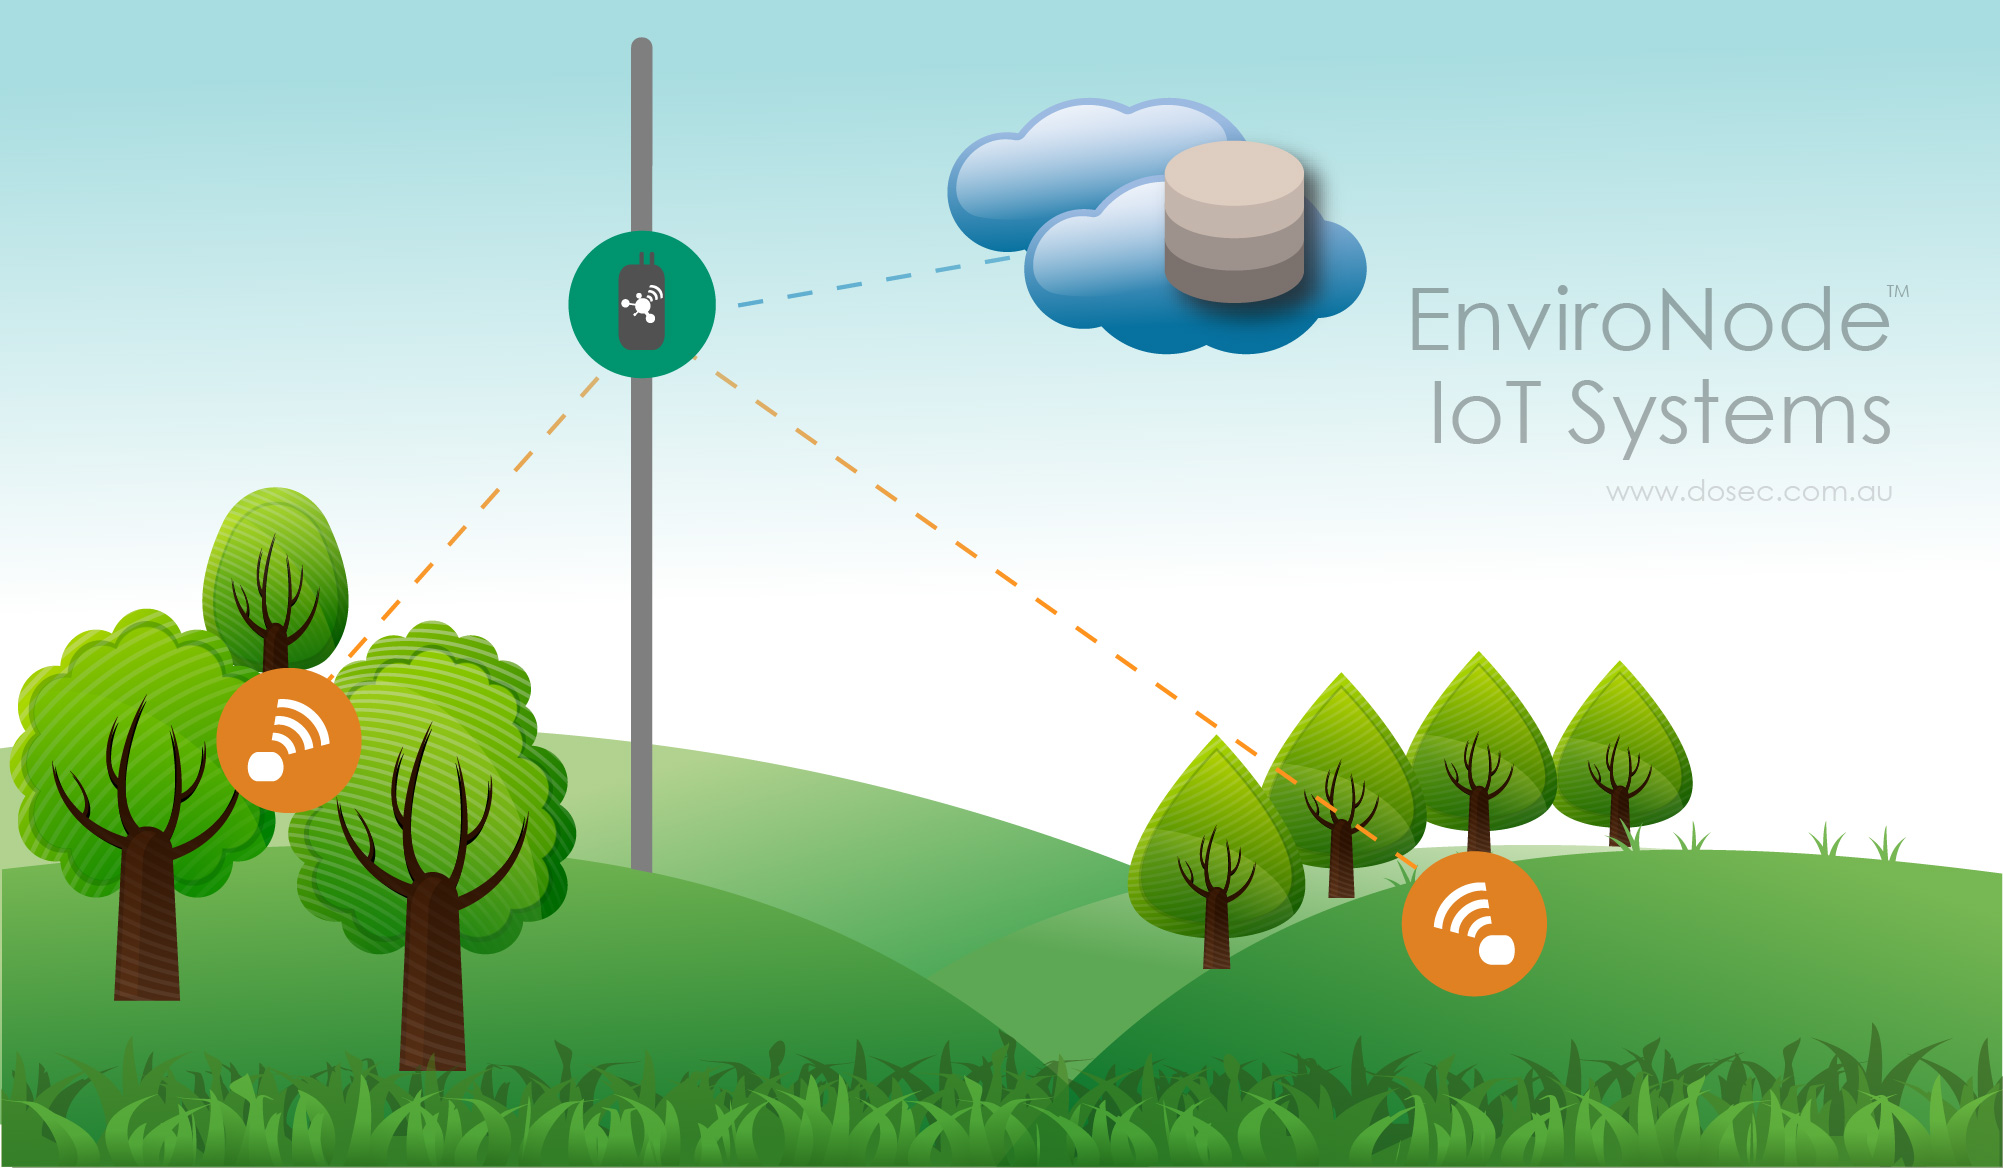 EnviroNode IoT Systems InfoGraphic – Dosec Design